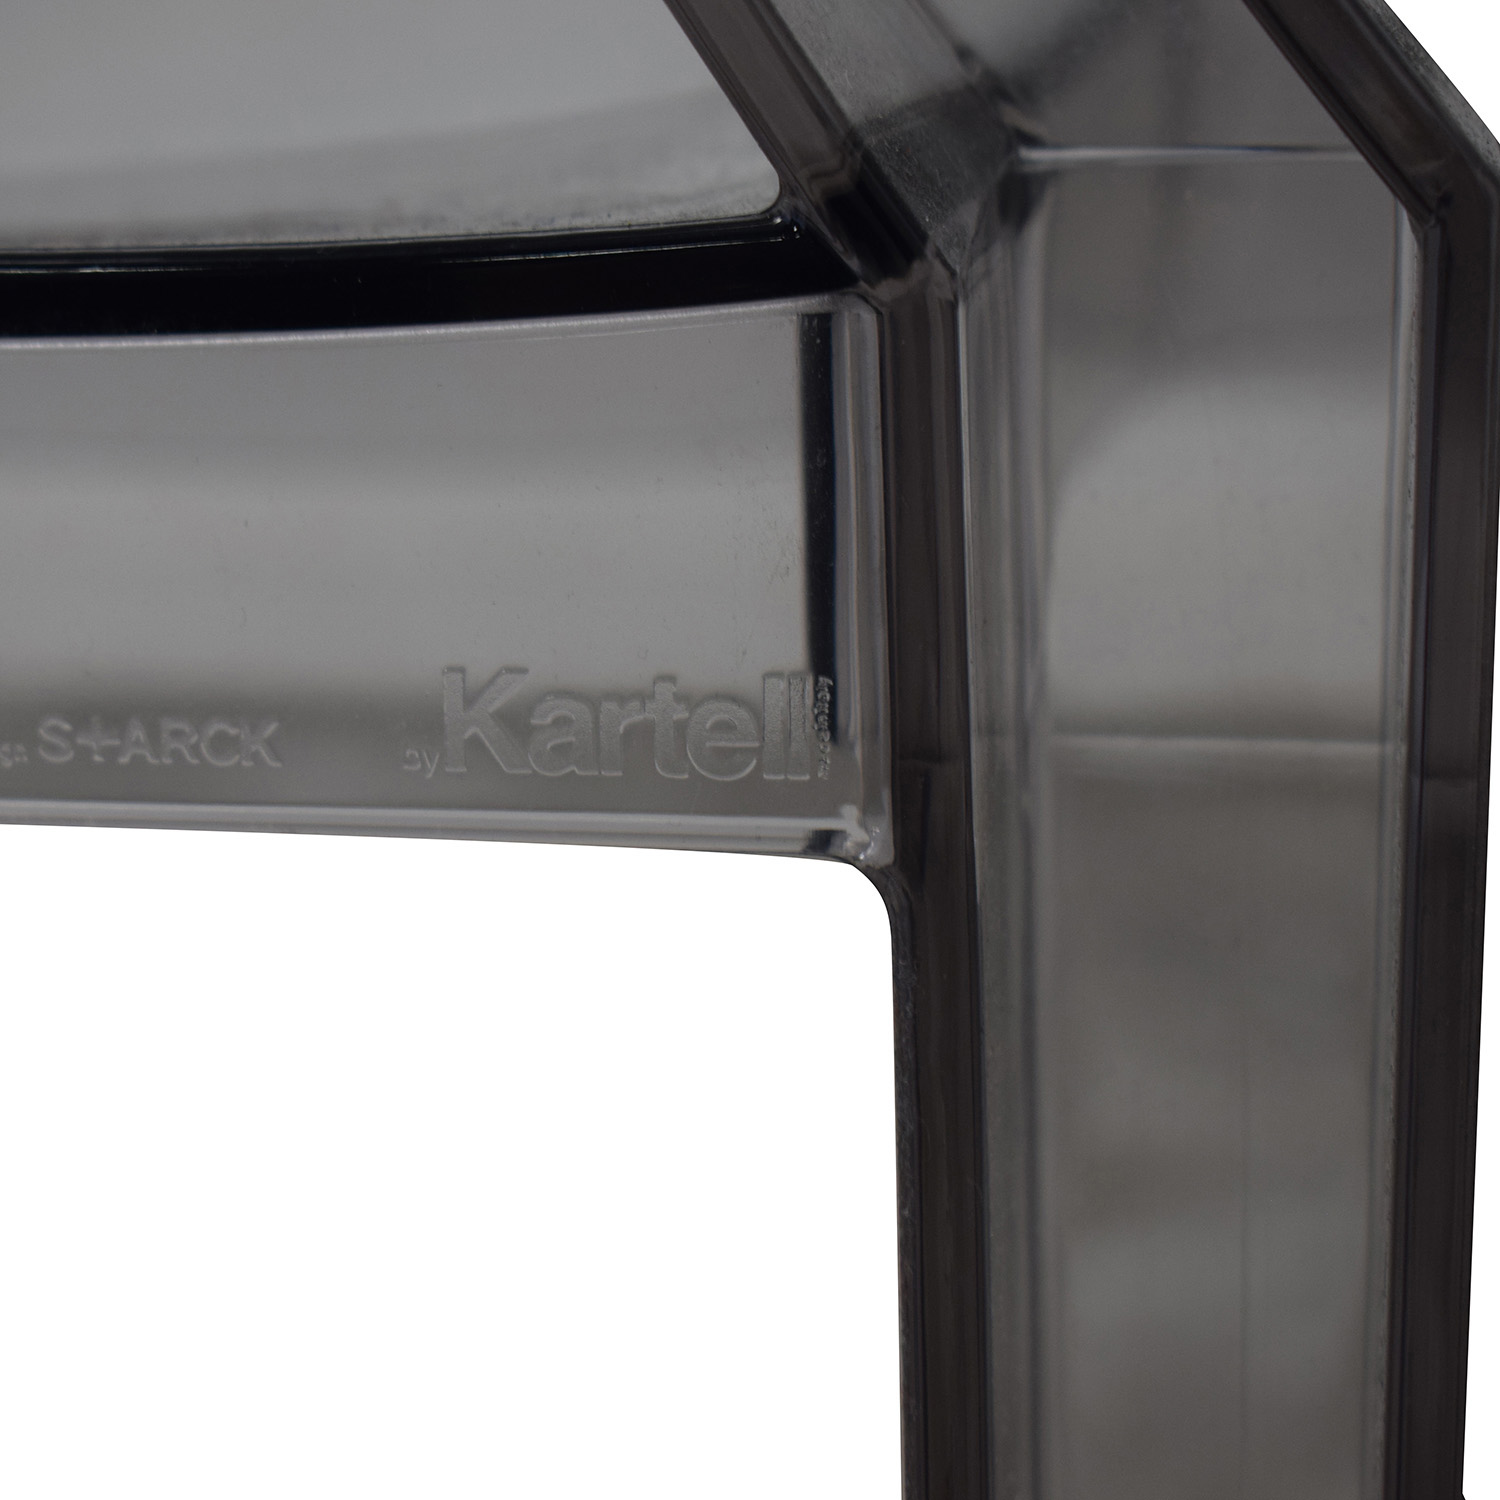 Kartell Kartell Philippe Stark Ghost Dining Chairs for sale